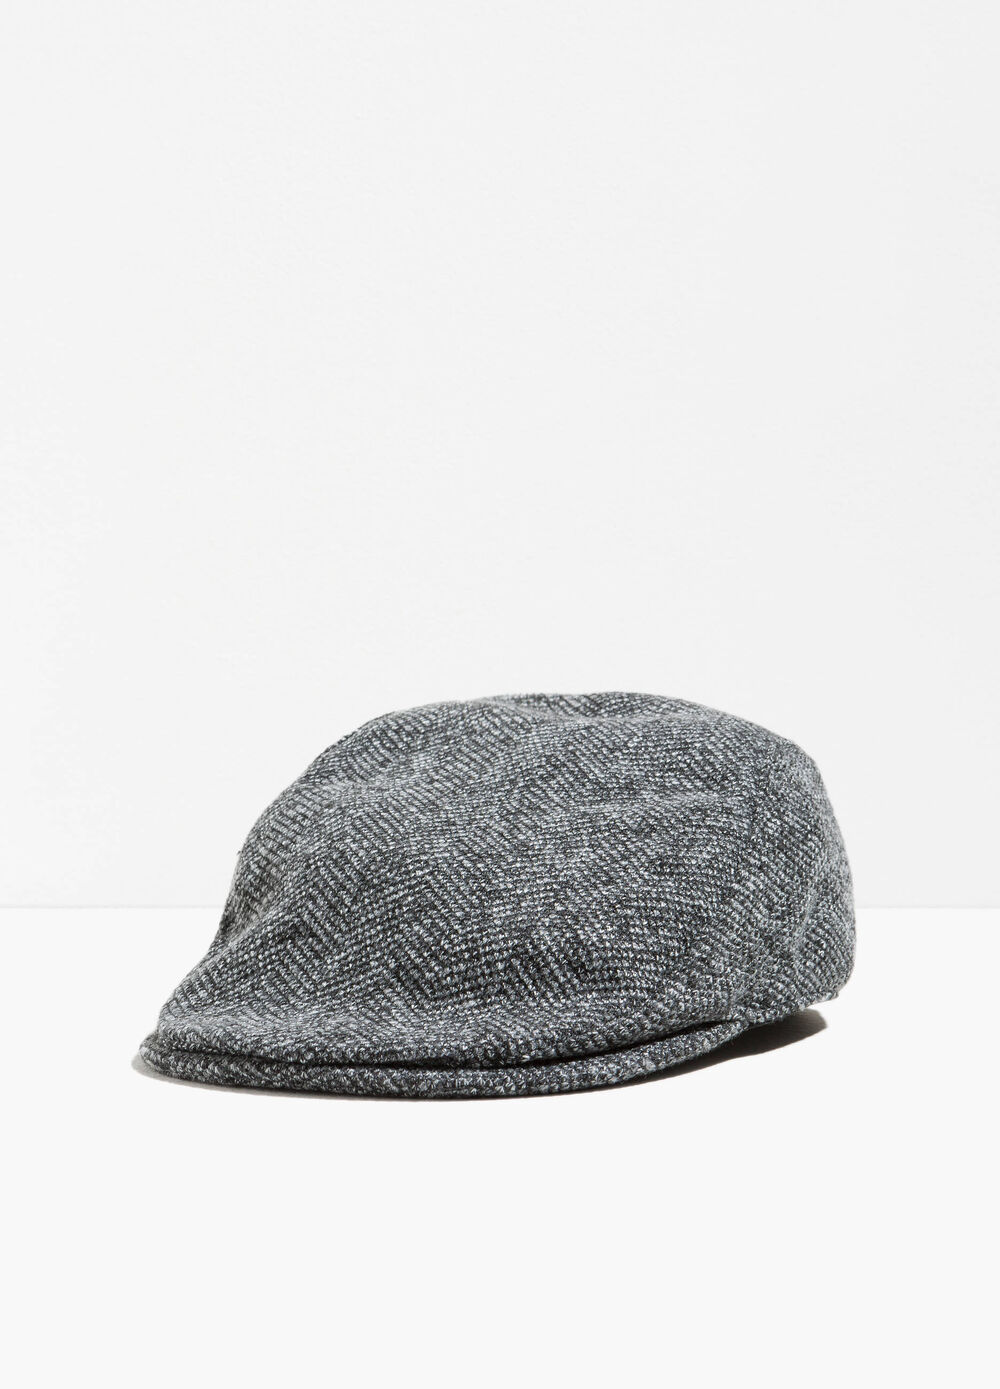 Flat cap with geometric weave